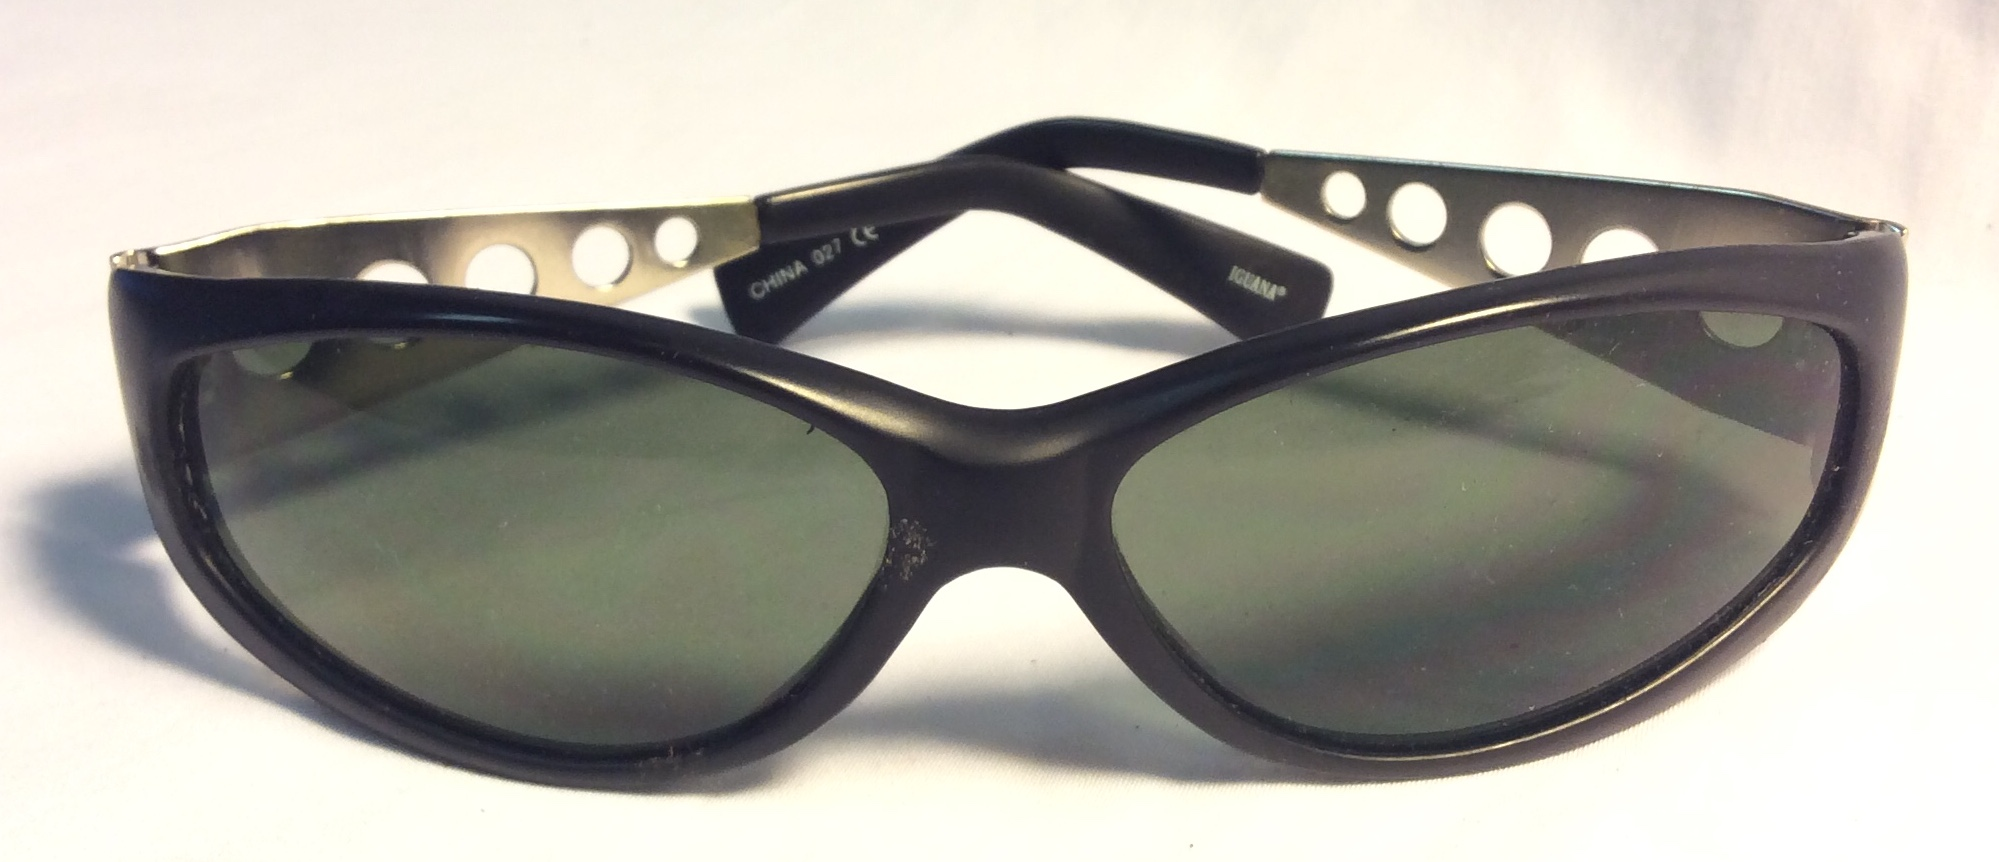 "Black ""Iguana"" Sunglasses w/ silver"